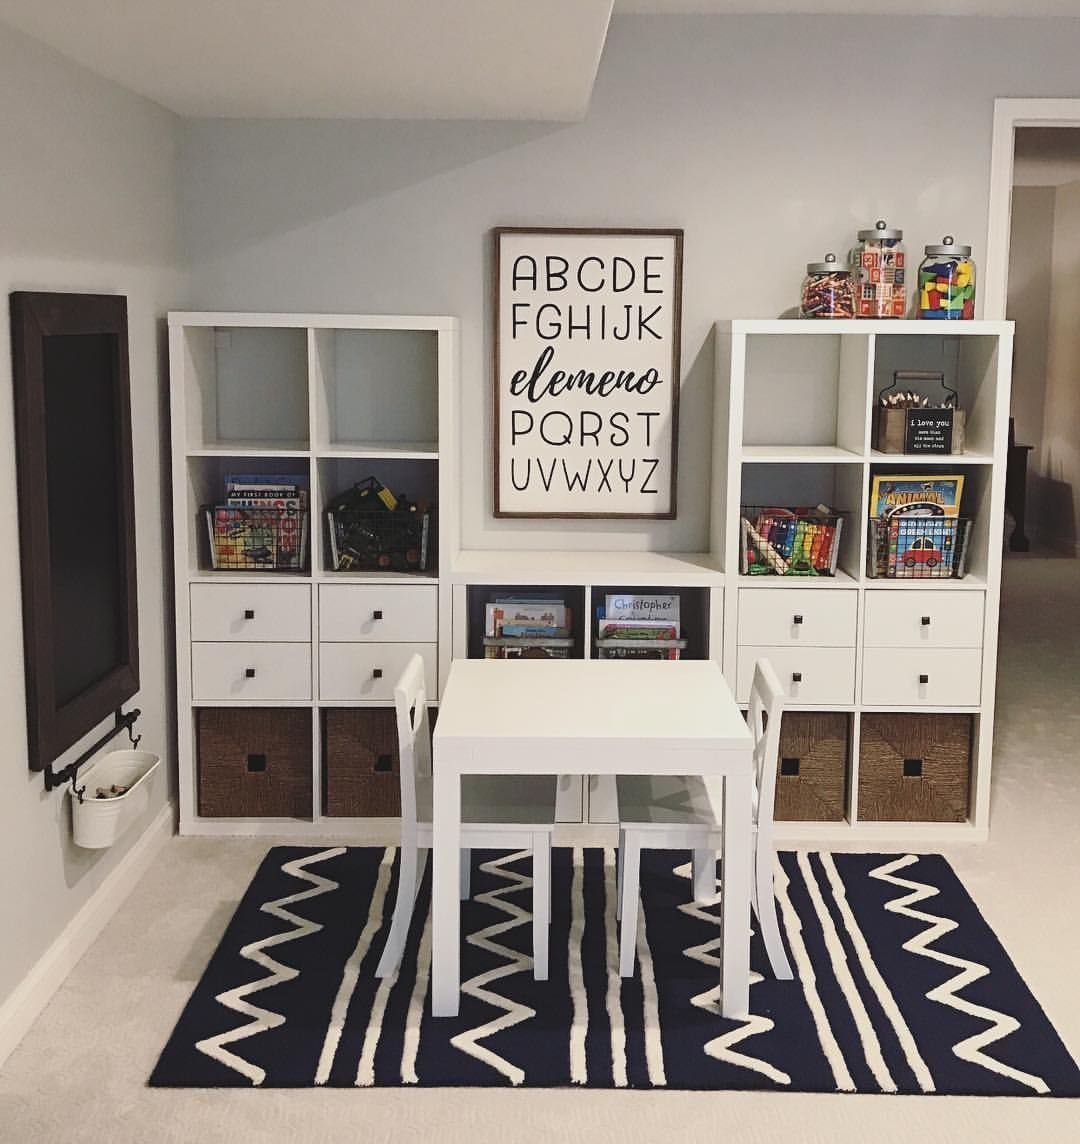 How Gorgeous Is This Playroom?! It's Inspiring Me To Redo My Kids